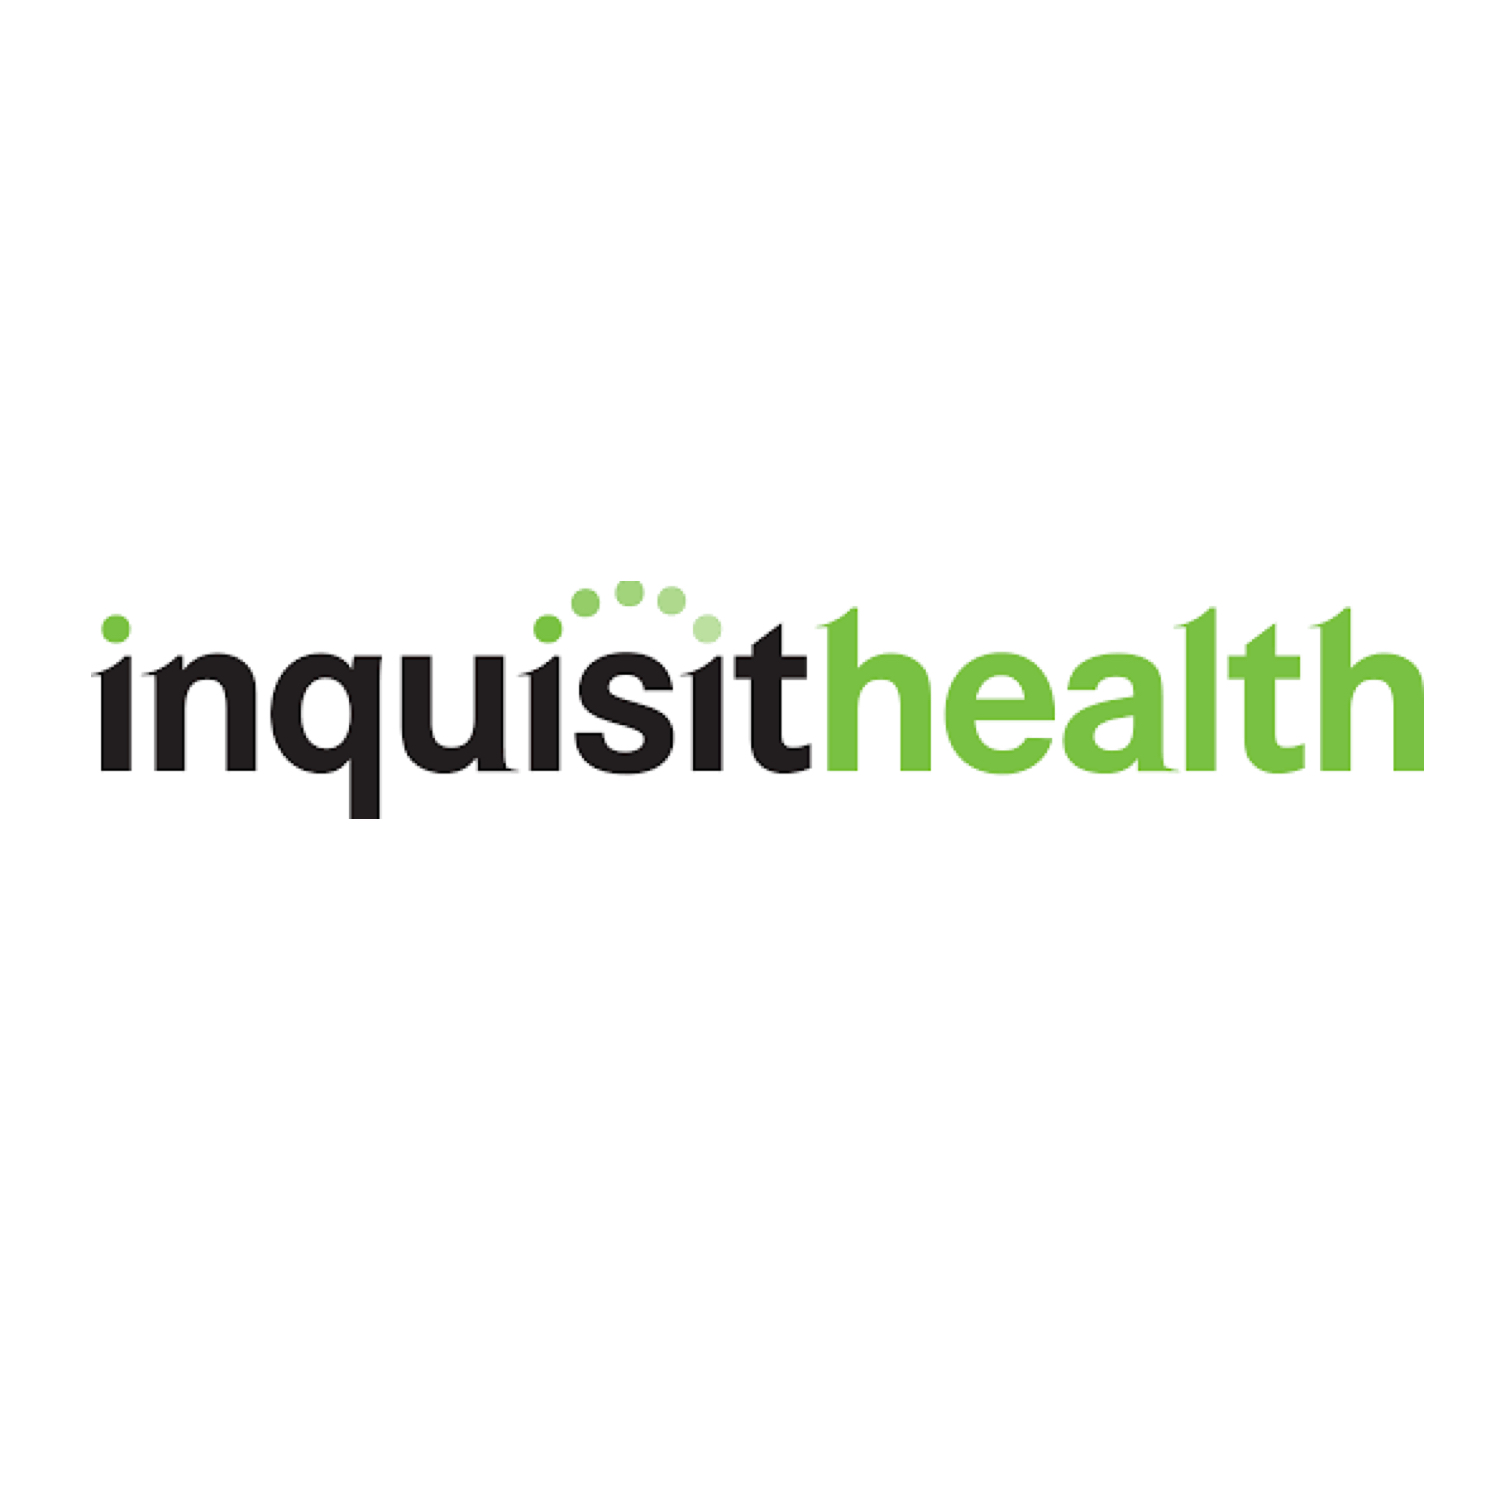 inquisit health logo.jpg